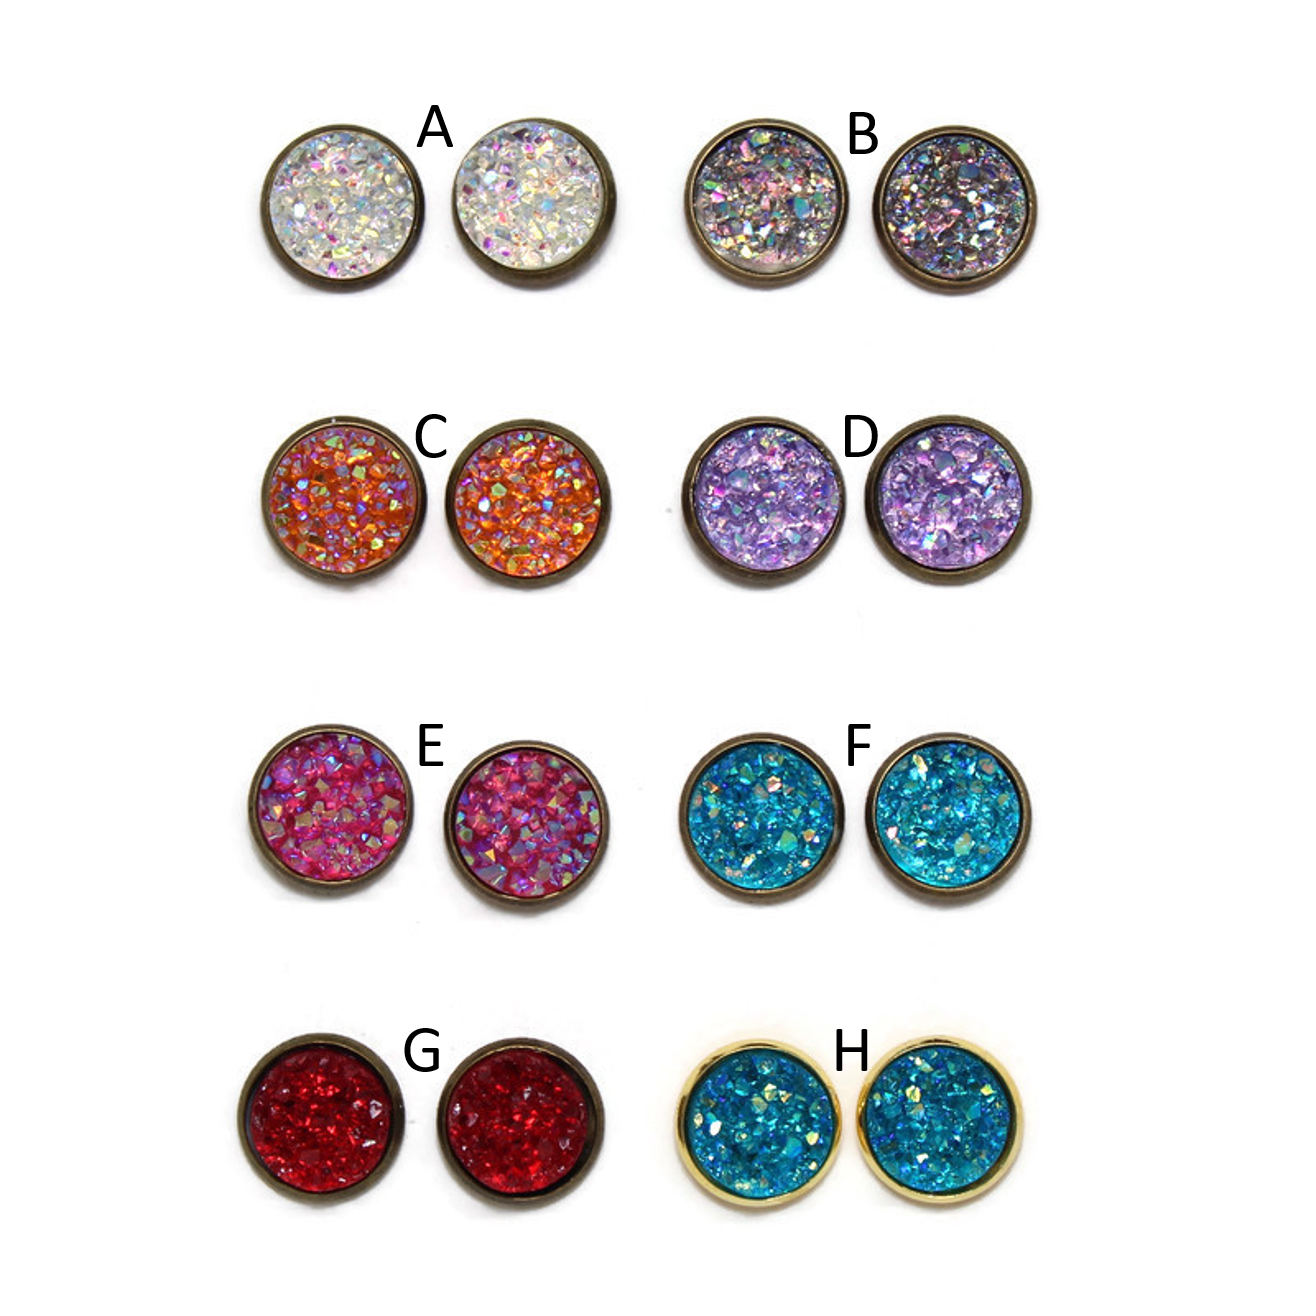 Glitz Dome Earring Collection - Jewel Tone